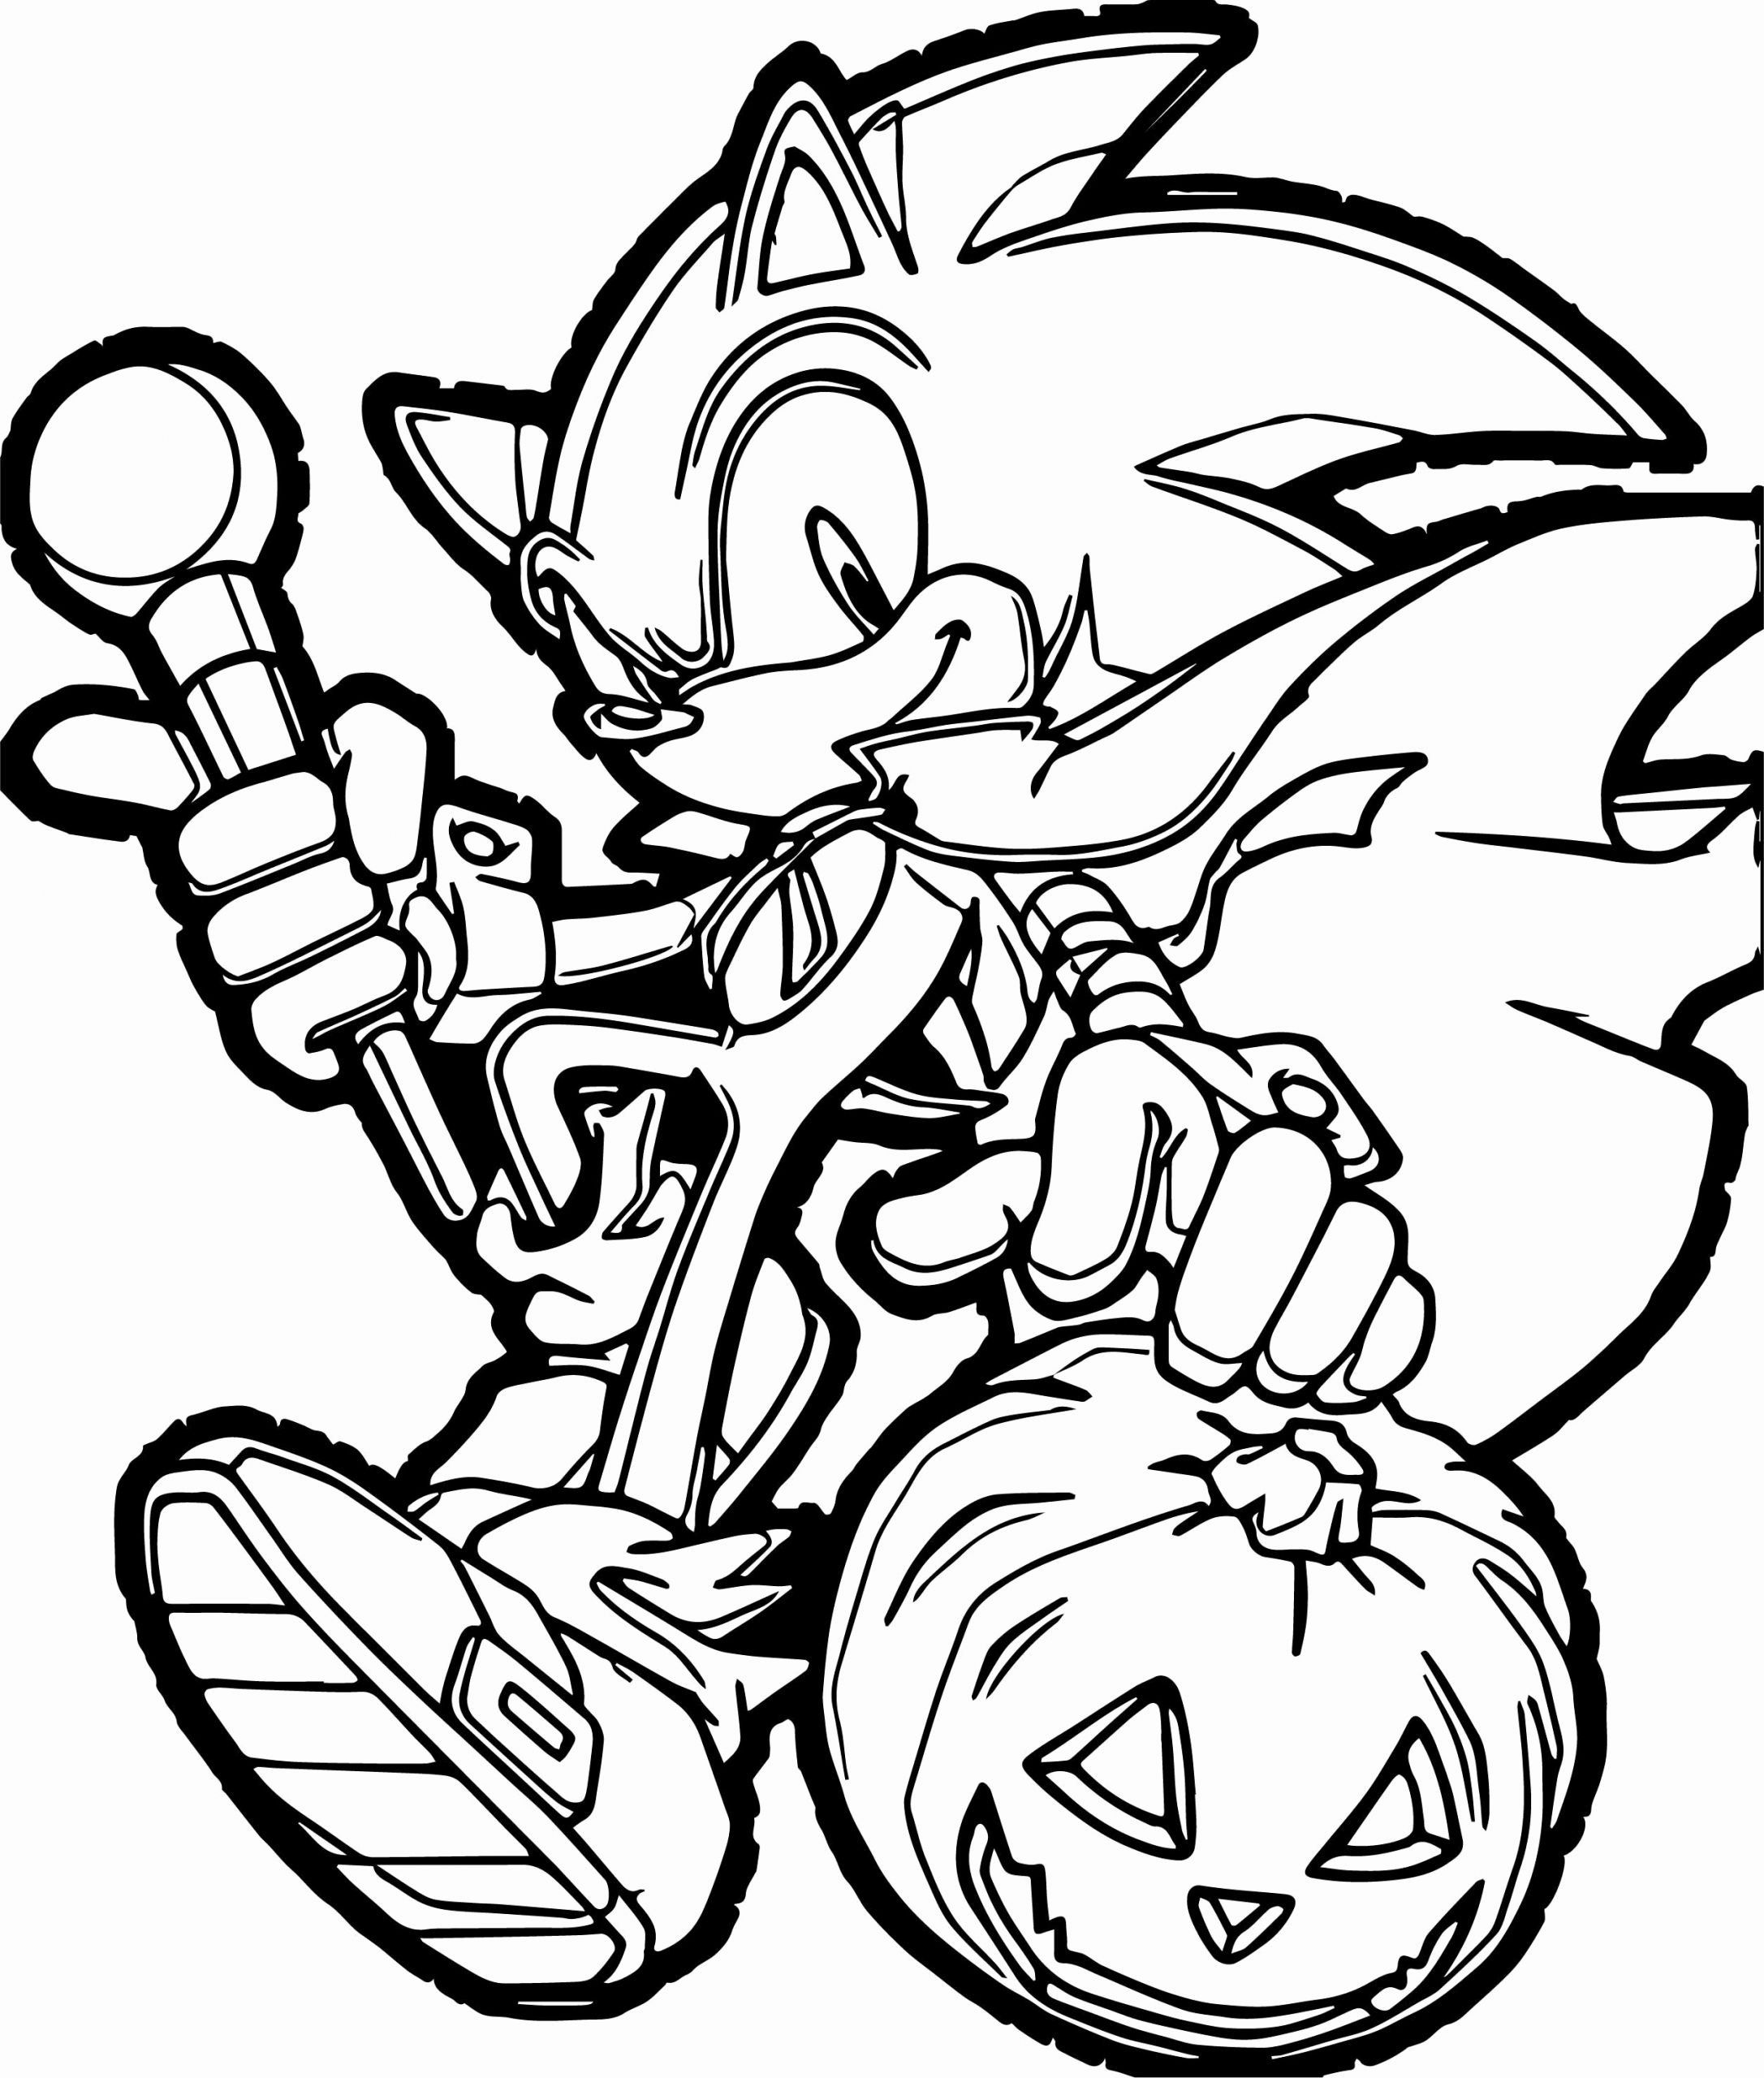 Sonic The Hedgehog Coloring Book Elegant Sonic The Hedgehog Halloween Pumpkin Coloring P Pumpkin Coloring Pages Monster Coloring Pages Halloween Coloring Pages